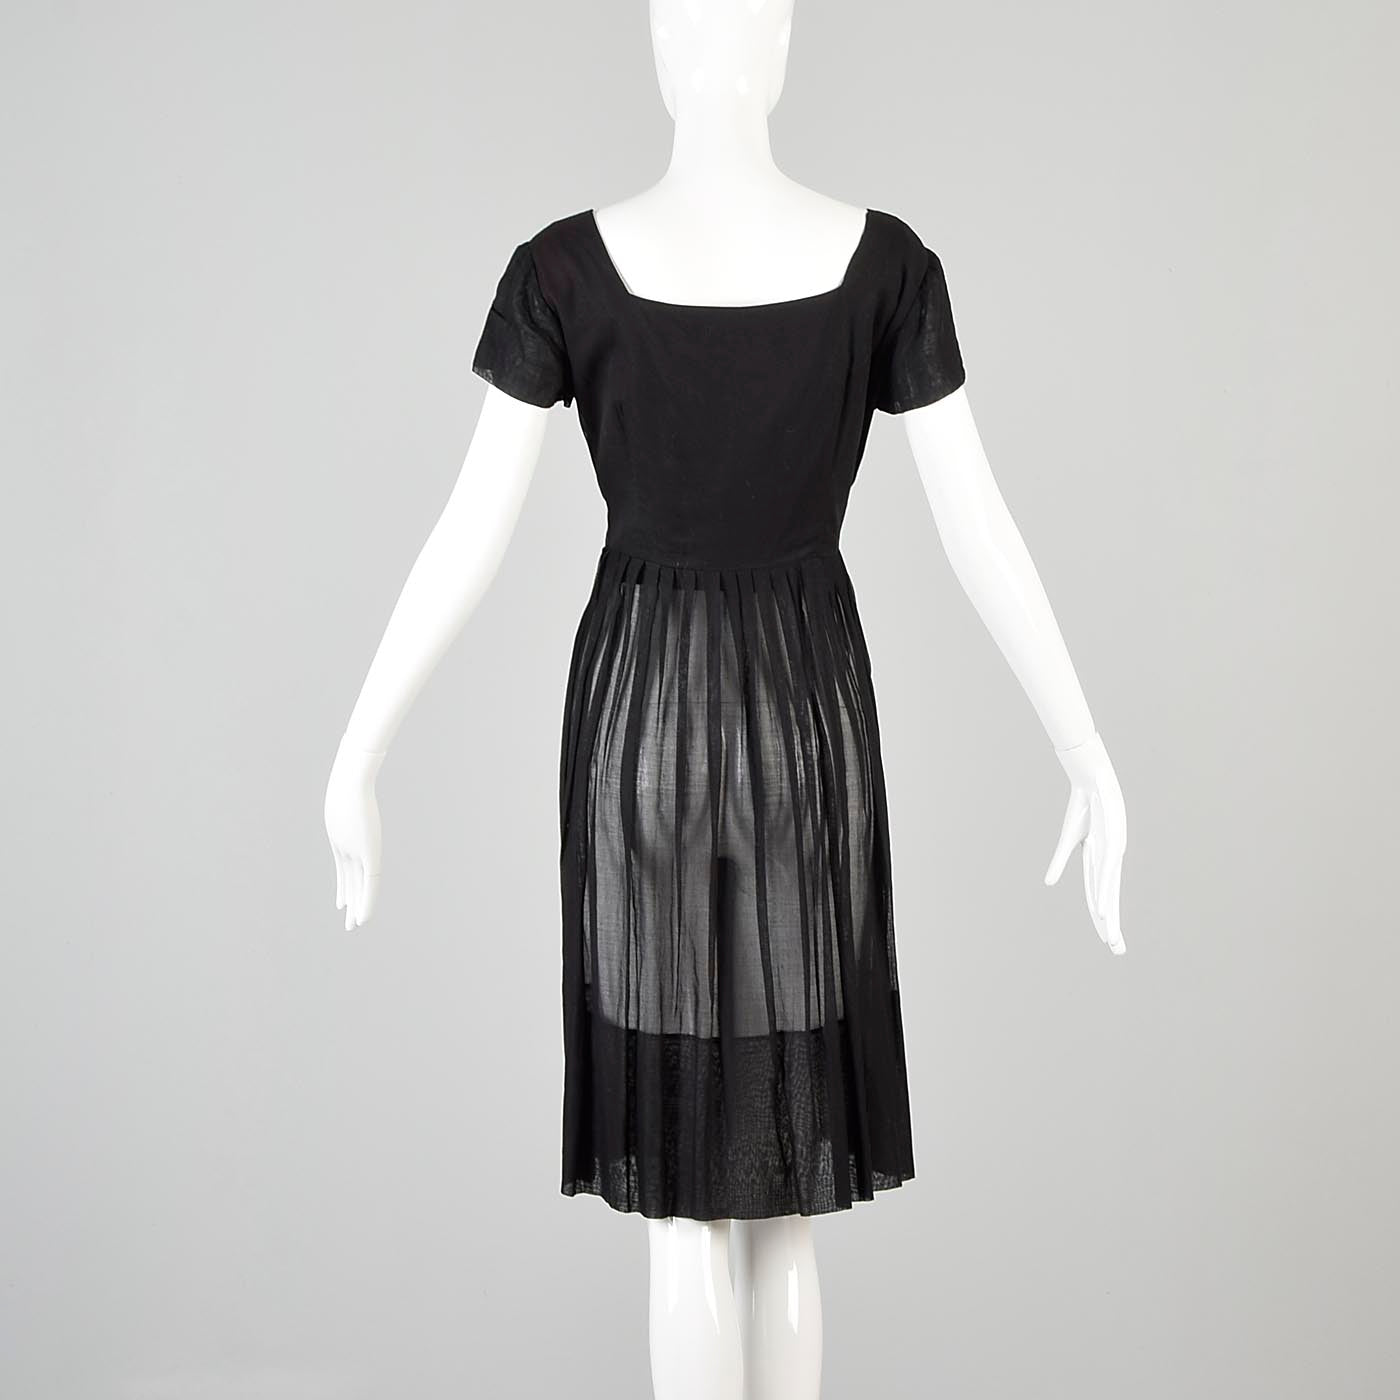 1950s Sheer Black Dress with Mother of Pearl Buttons